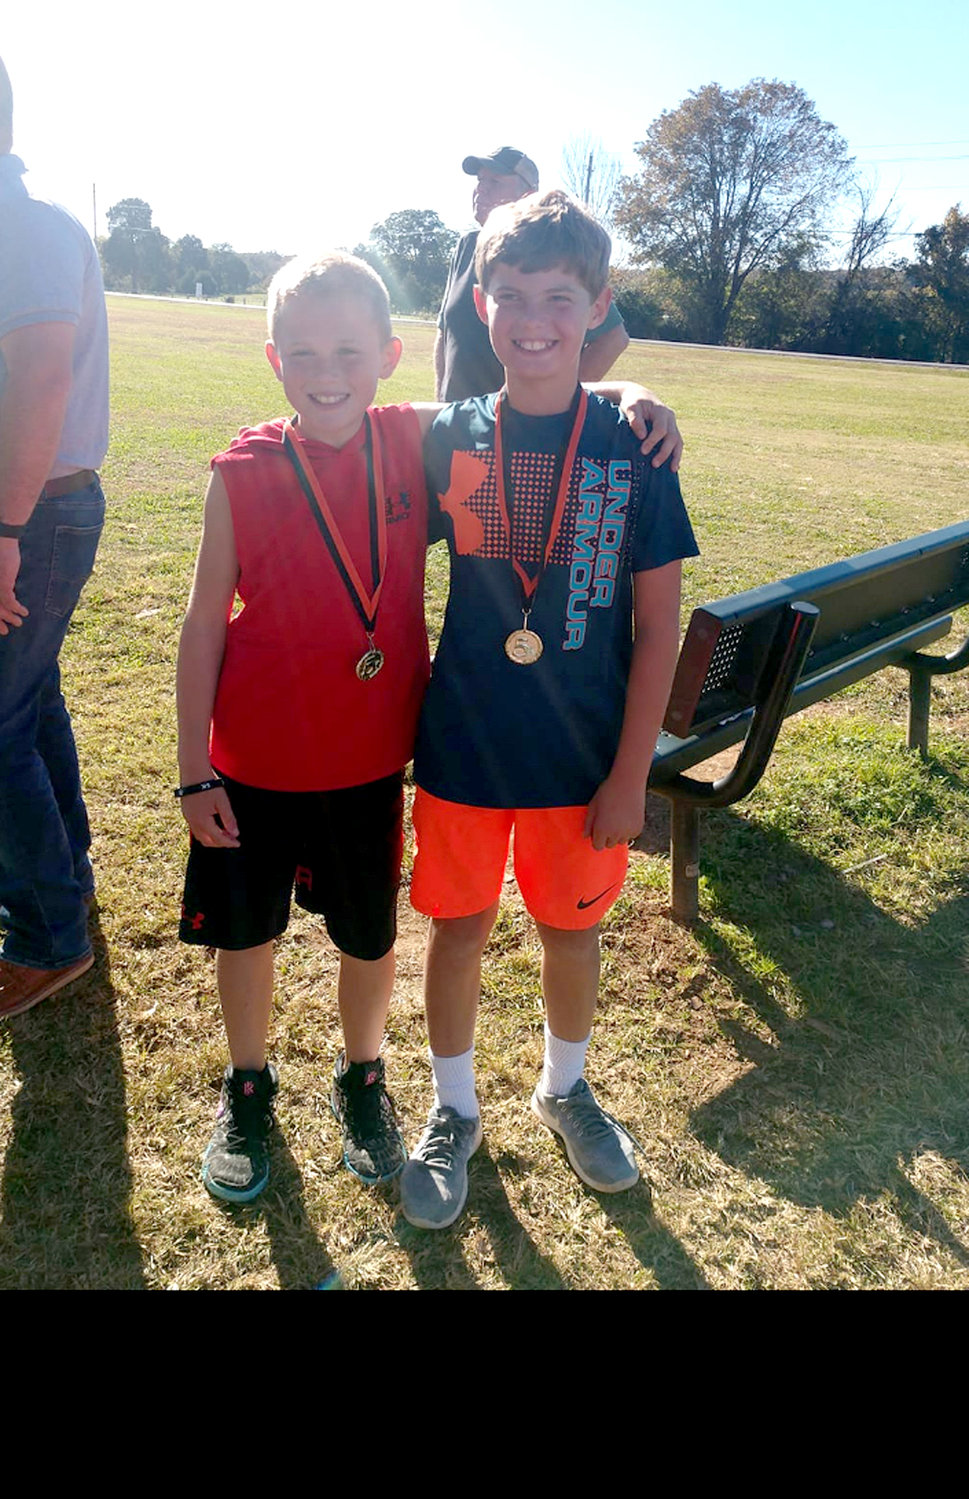 Eli Eslinger and Kane Cooley tied as first-place winners in the Black Fox Fall 5K Run, organized and led by coach Kara Gibson. Both Eslinger and Cooley finished the run in a record time of 26 minutes, 11 seconds.